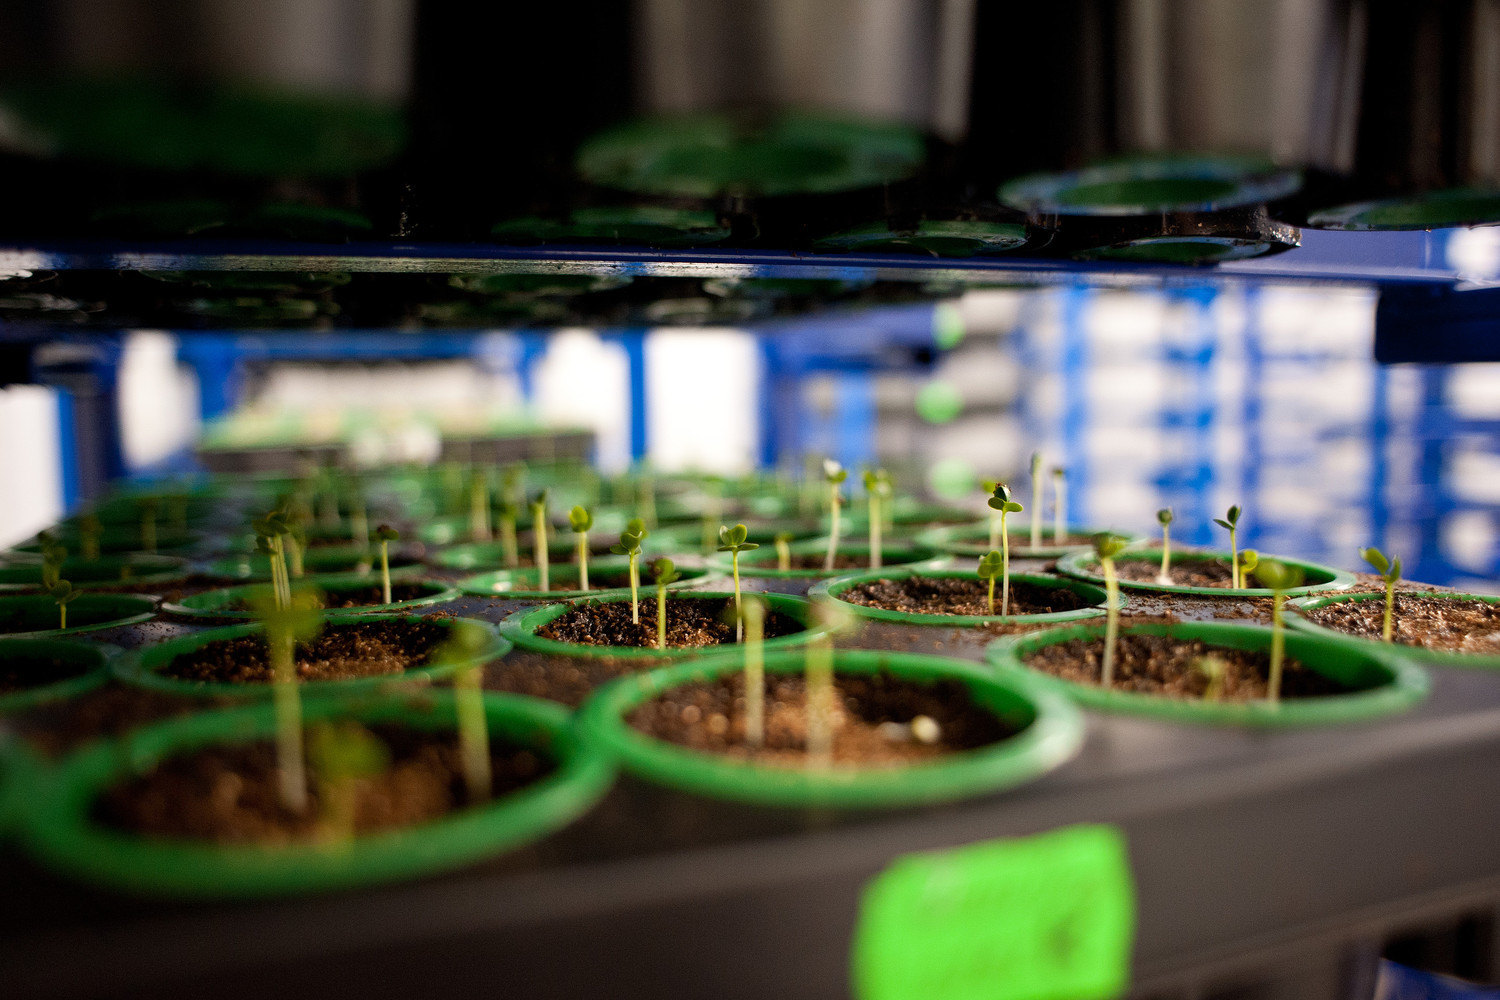 How do we make 100% seeds sprout